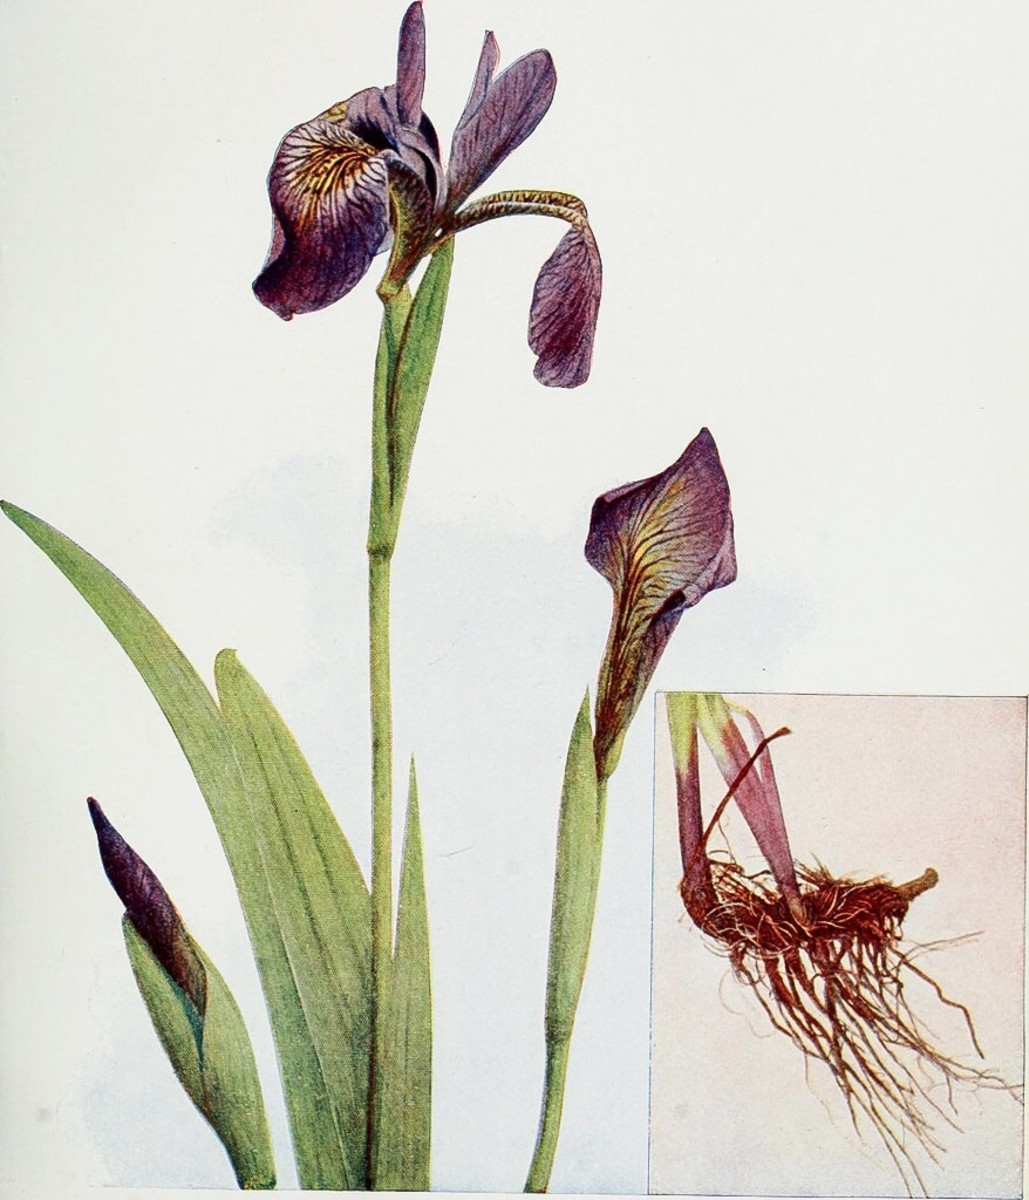 An illustration of an iris plant and its rhizome; in a few species, the rhizome is used to produce dried and preserved orris root